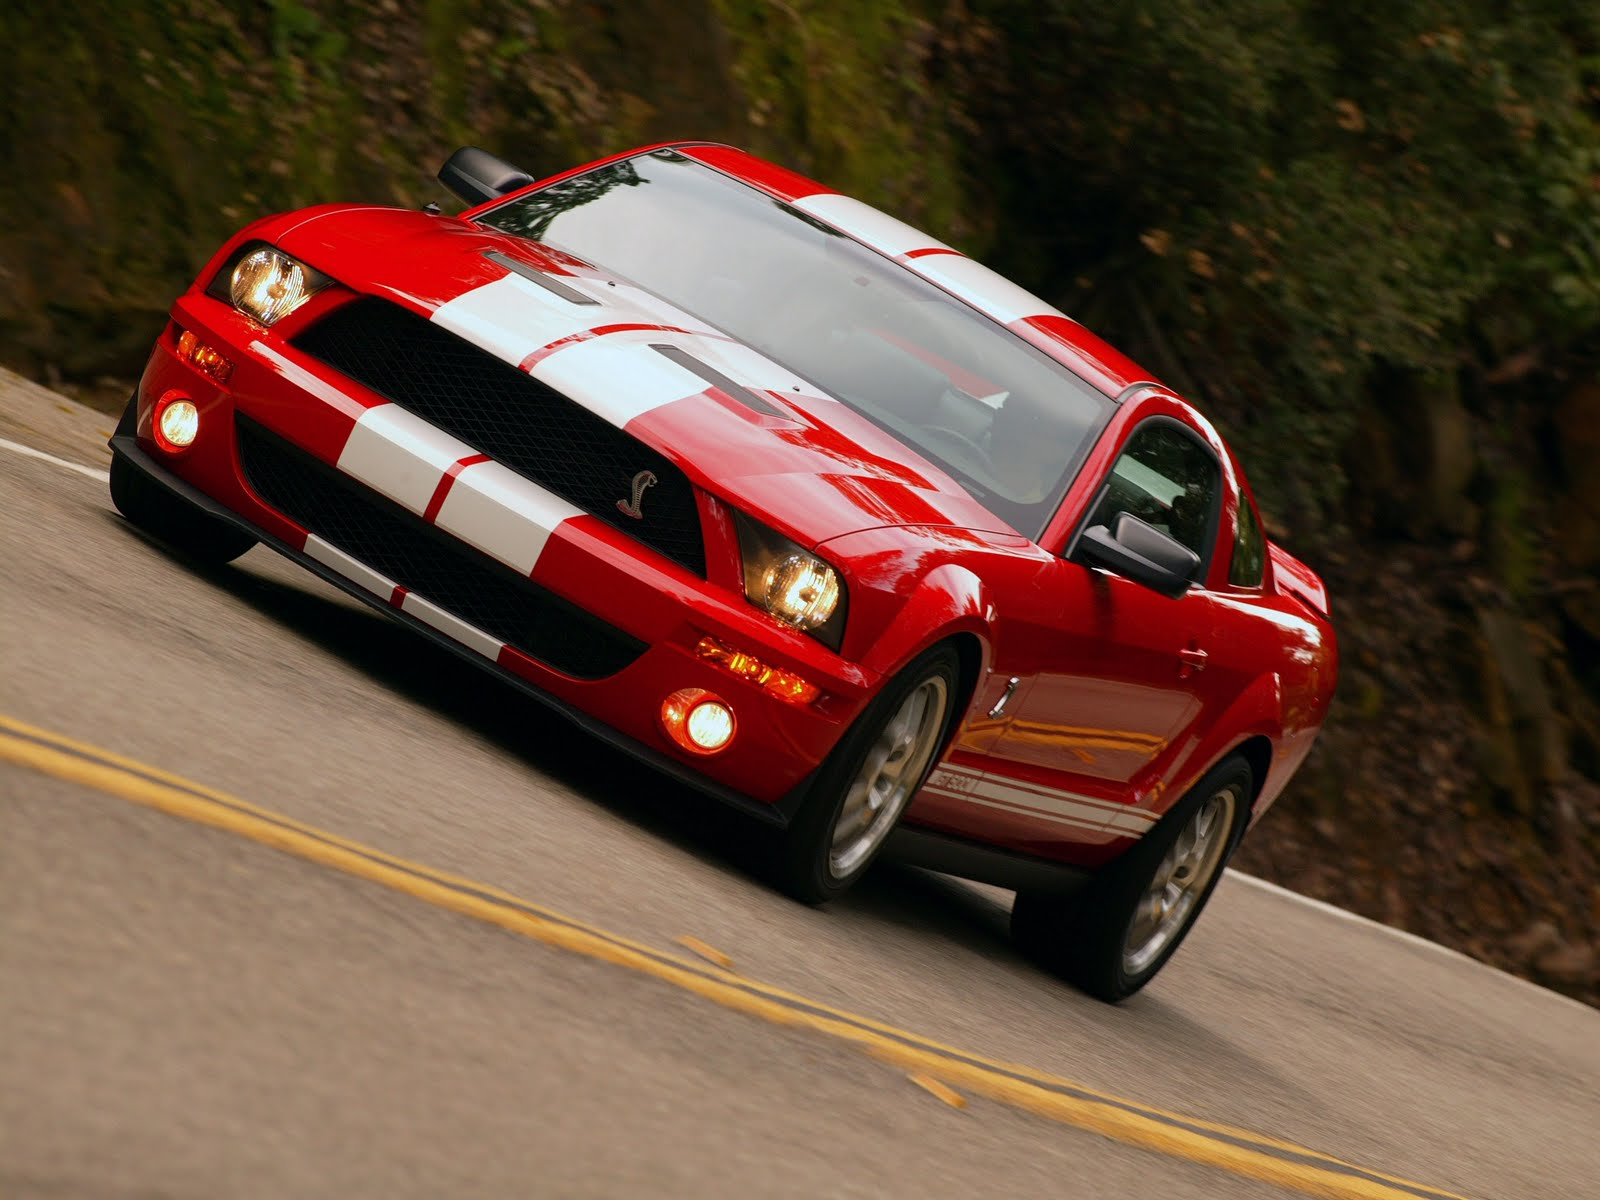 ford mustang ford mustang shelby gt500. Black Bedroom Furniture Sets. Home Design Ideas